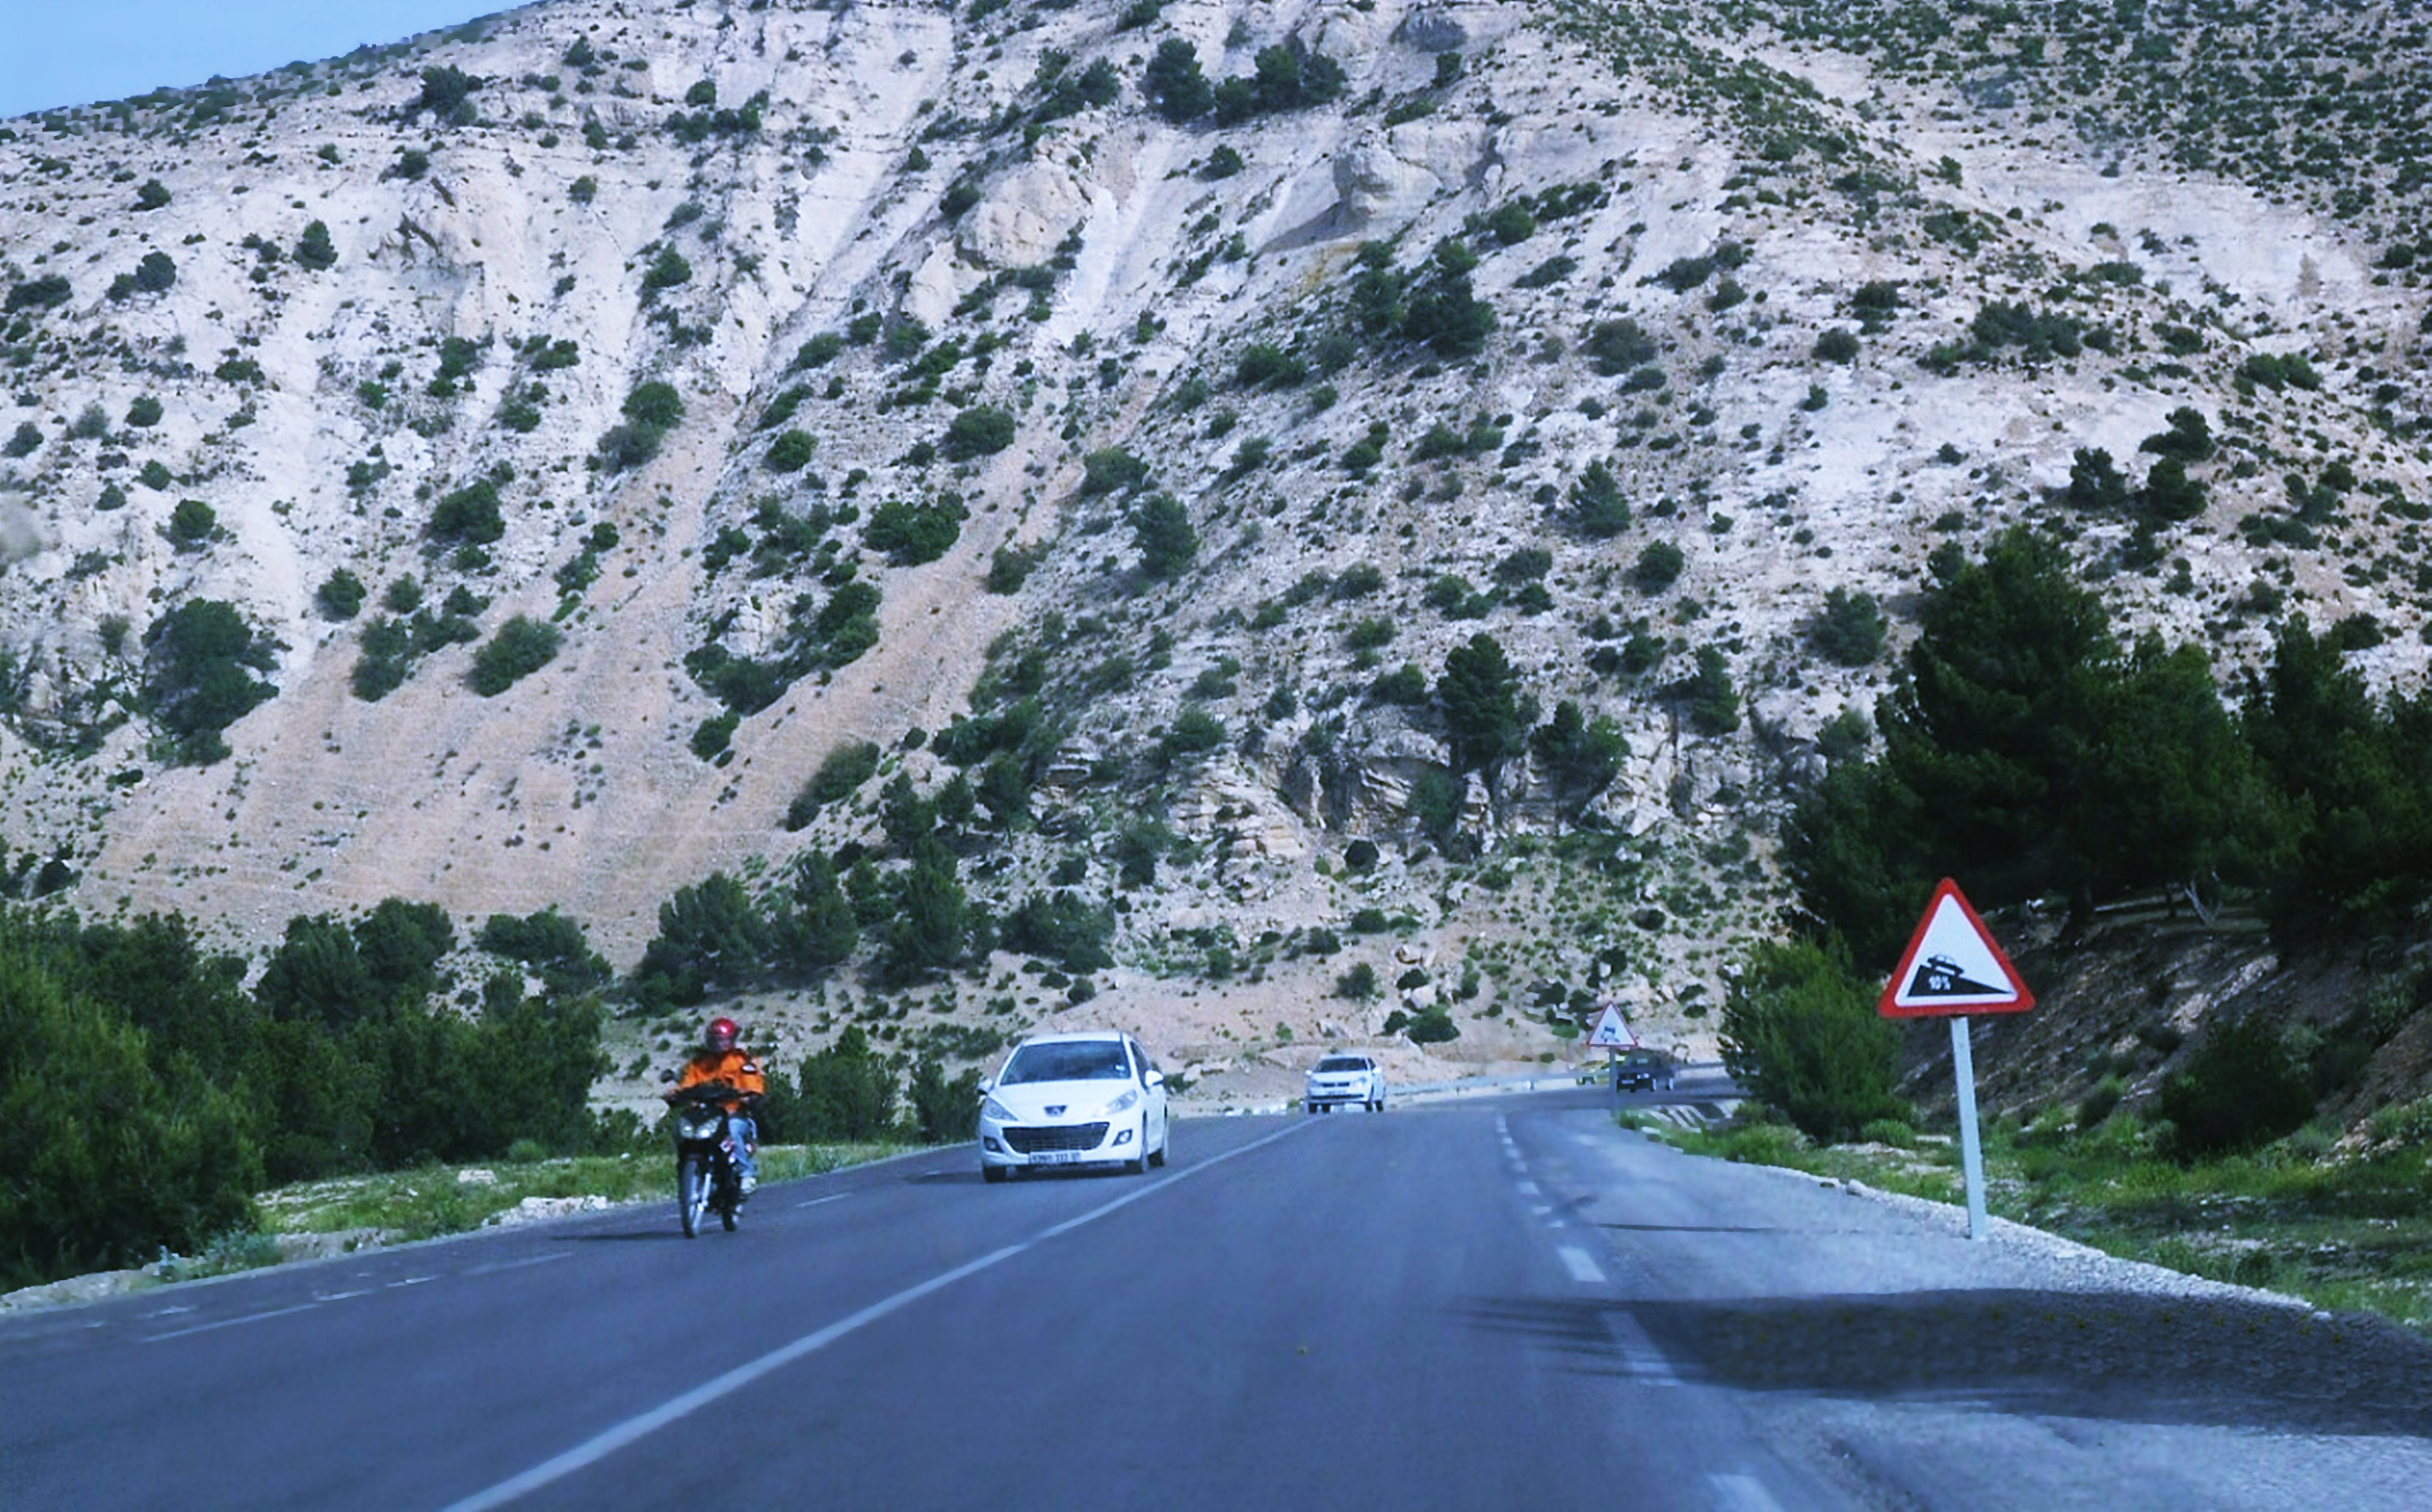 road tebessa mountains trees hills cars motorcycles landscapes nature algeria north africa chaoui amazigh